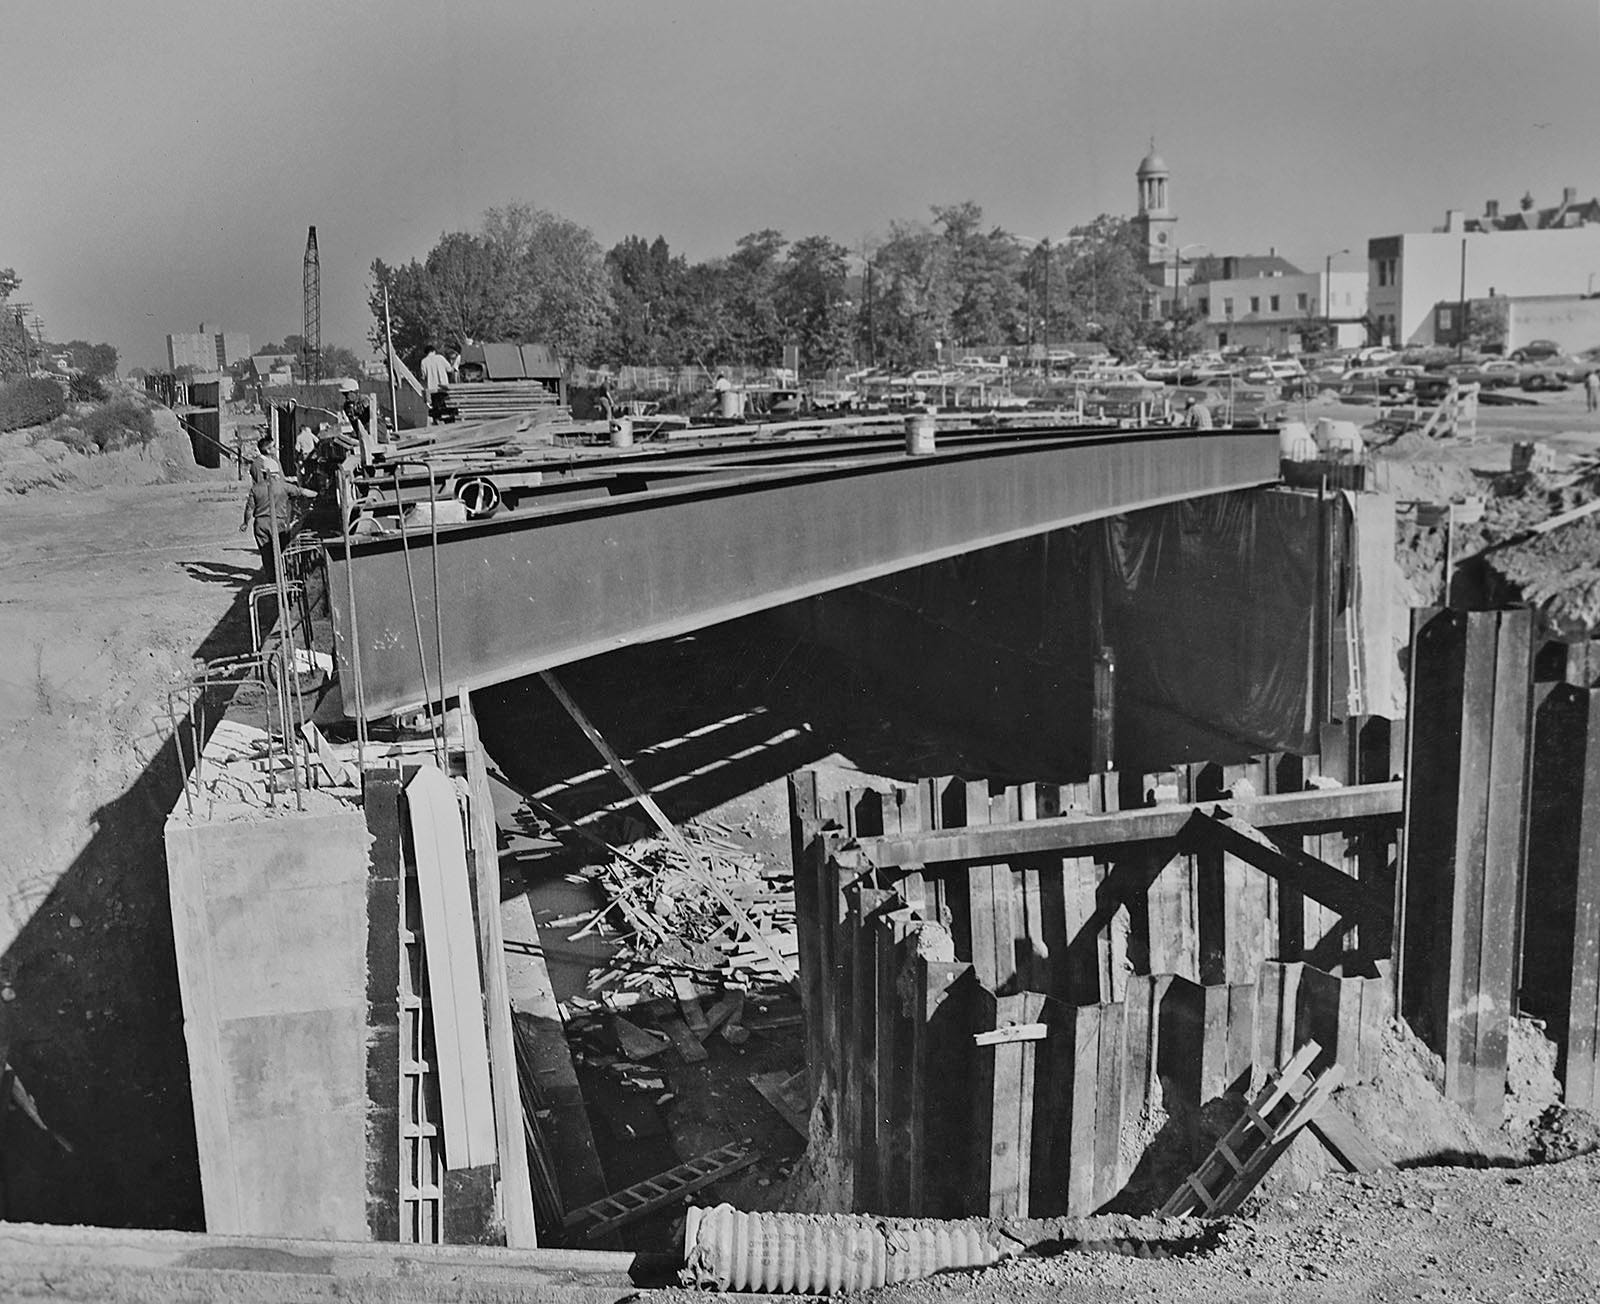 An image of MBTA Red Line construction in Quincy from the Quincy Historical Society collection.